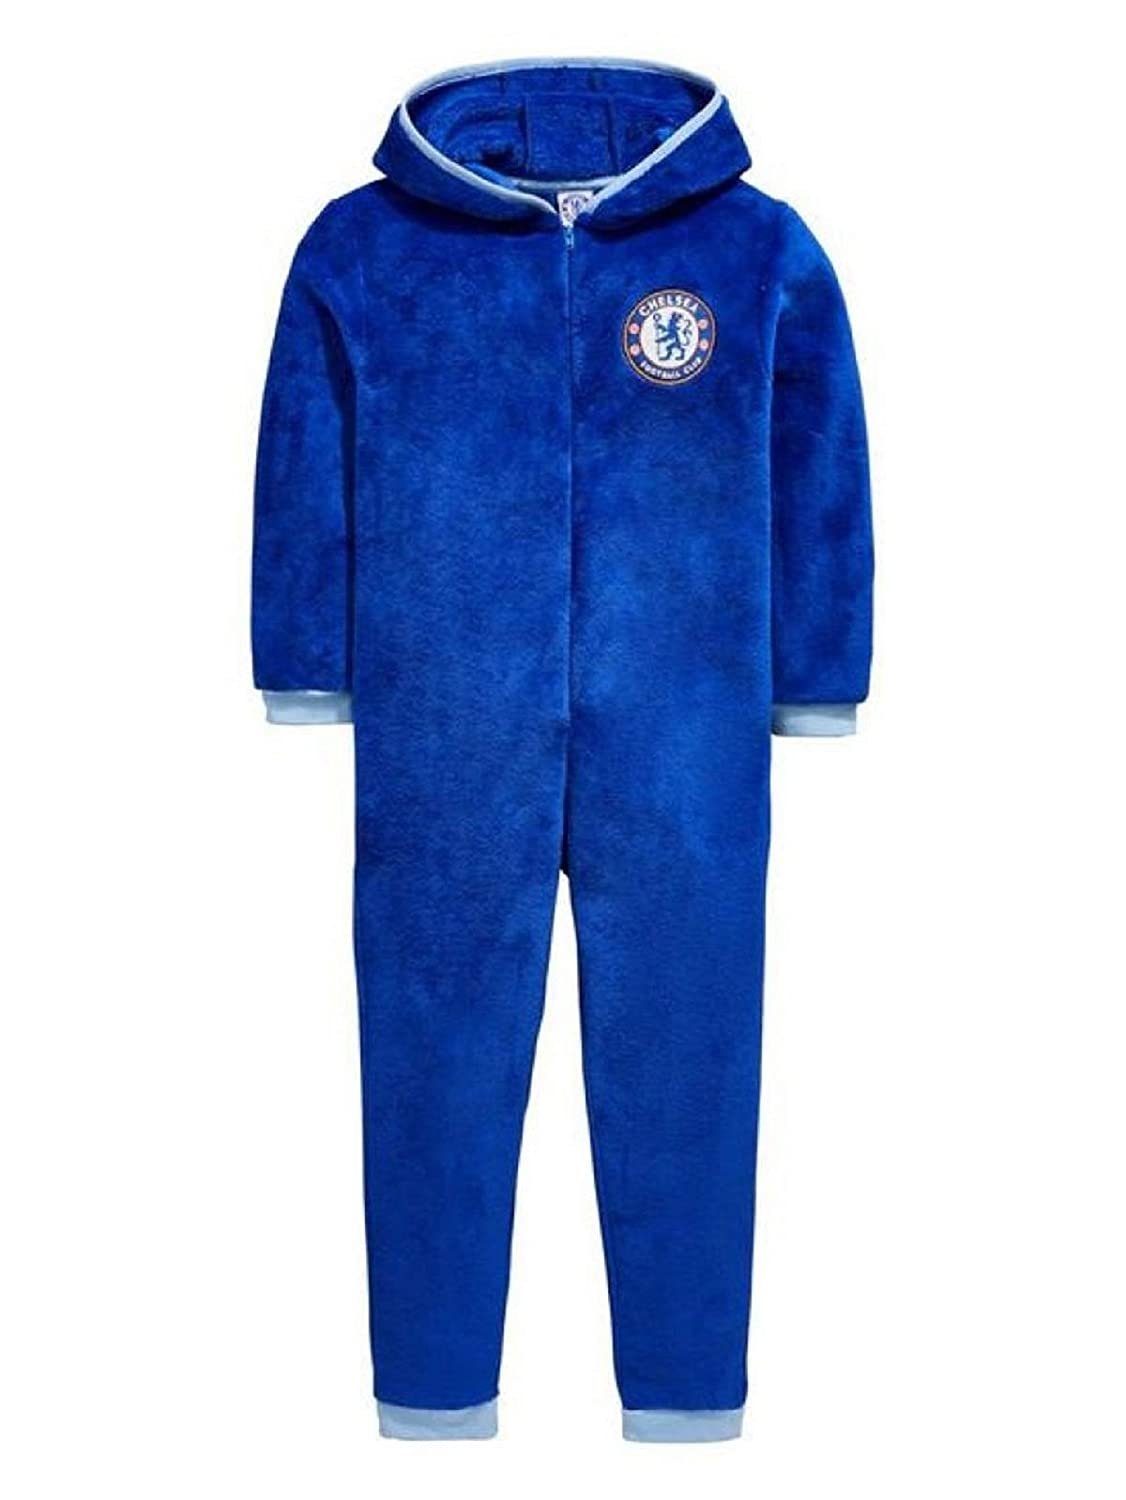 Boys Official Chelsea Football Club Fleece Hooded All in One Age 3-12 Years